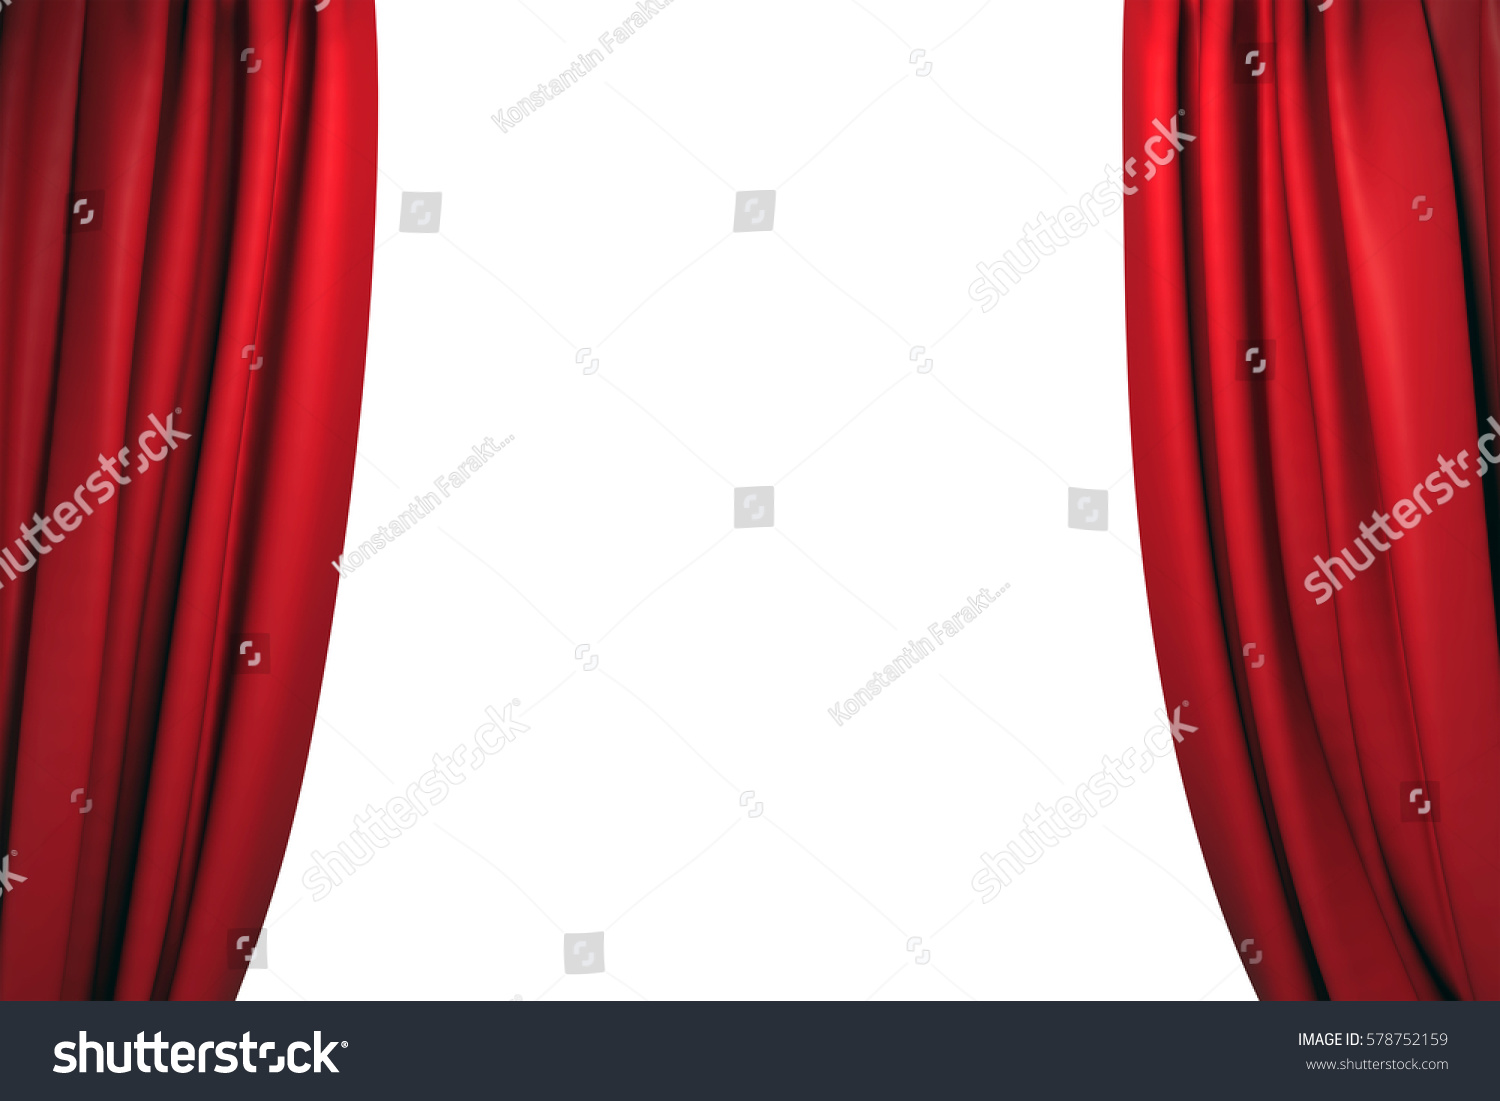 Open stage curtains - Open Red Velvet Stage Curtains On White Background 3d Illustration